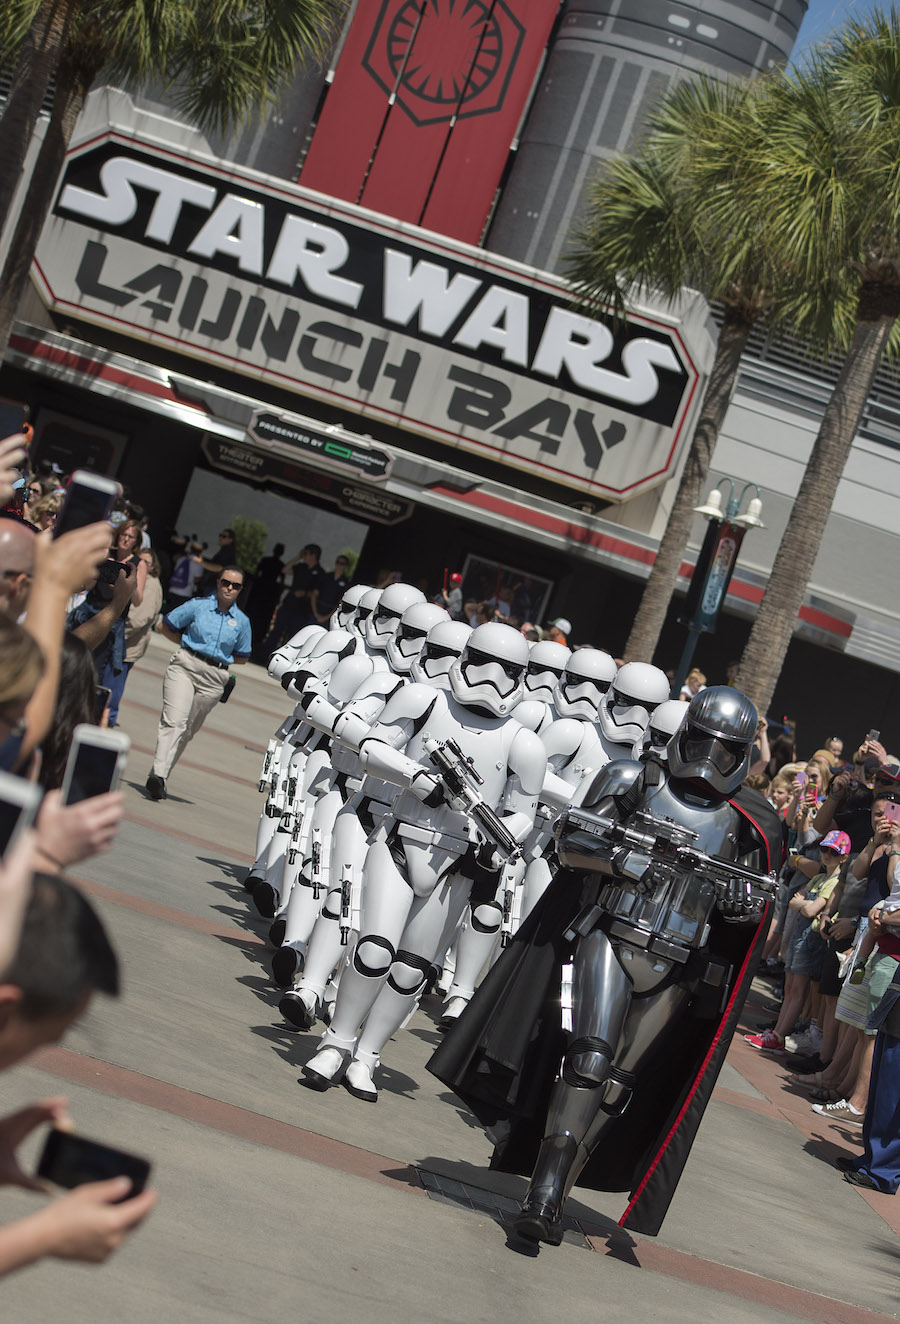 New Star Wars Attractions Coming to Walt Disney World Summer 2016